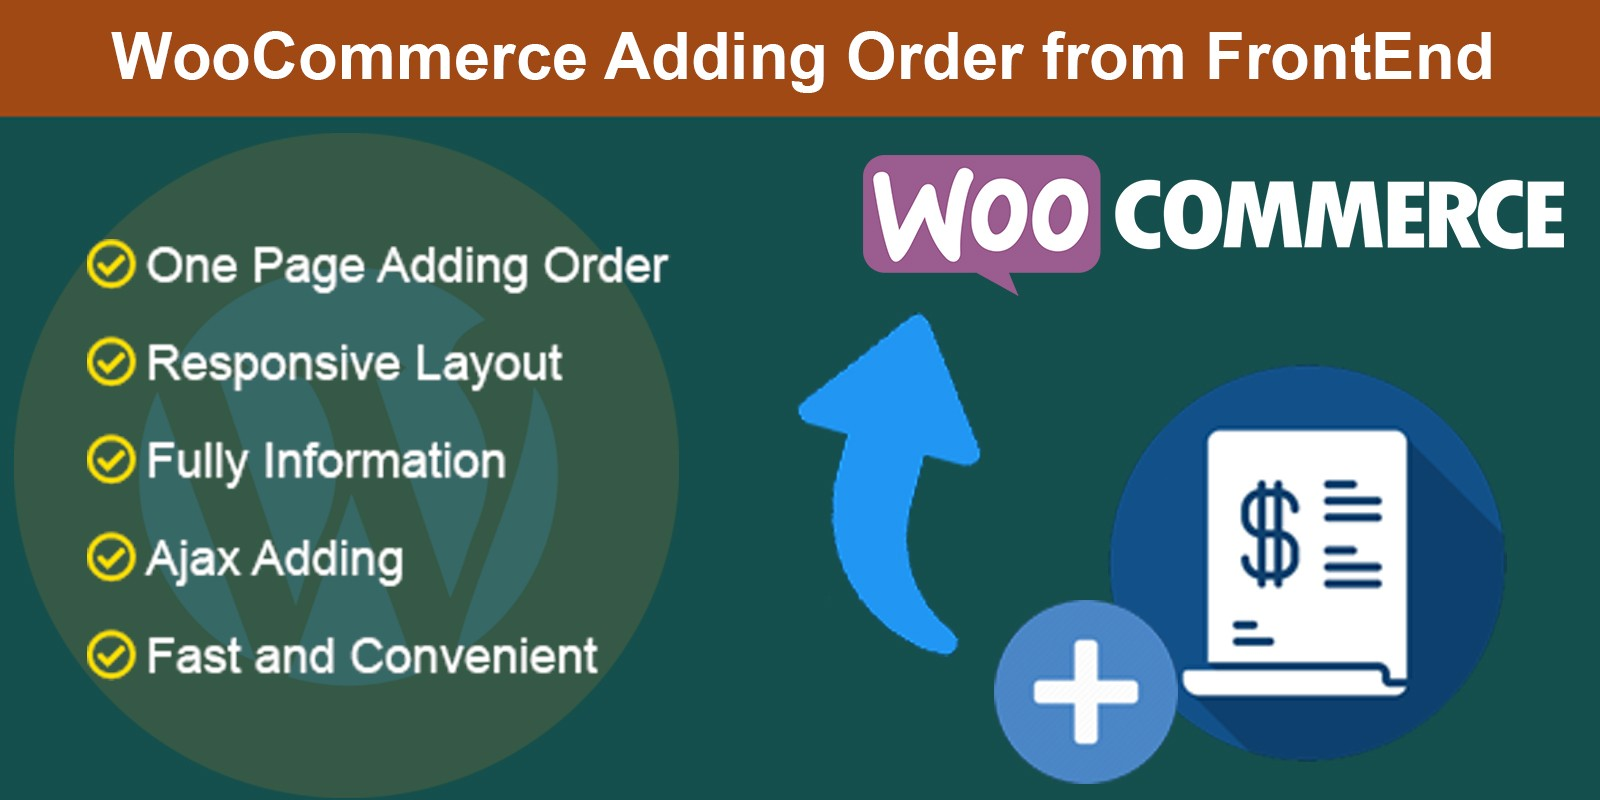 WooCommerce Adding Order From FrontEnd